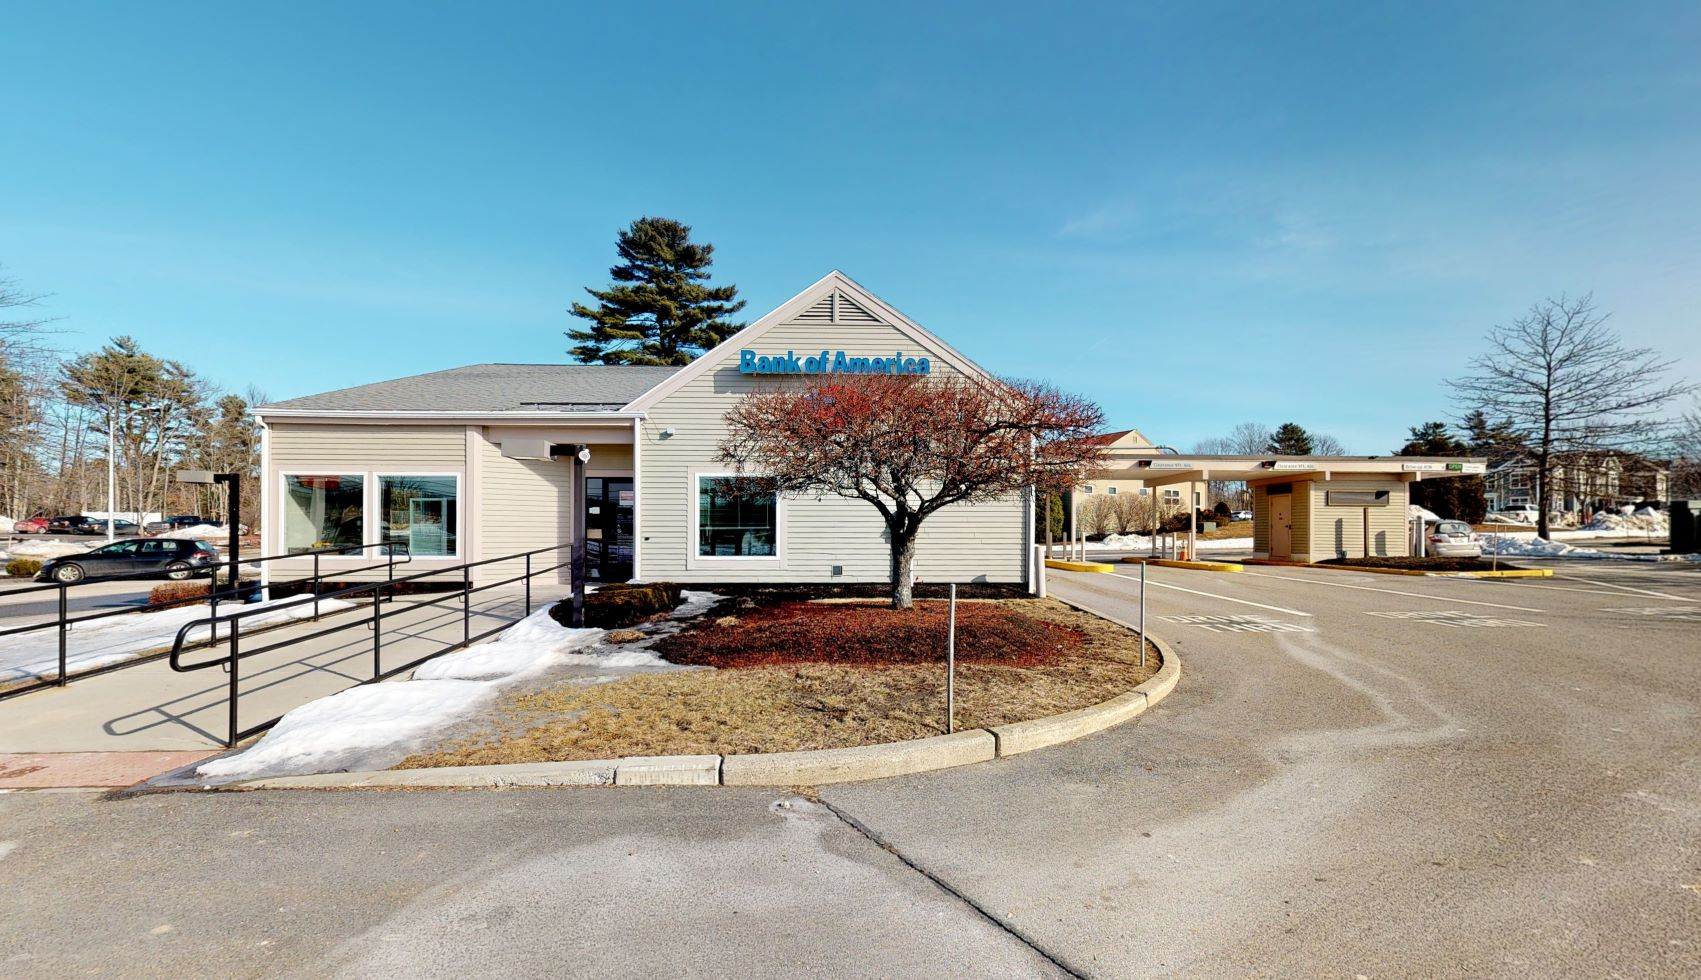 Bank of America financial center with drive-thru ATM   37 Gorham Rd, Scarborough, ME 04074